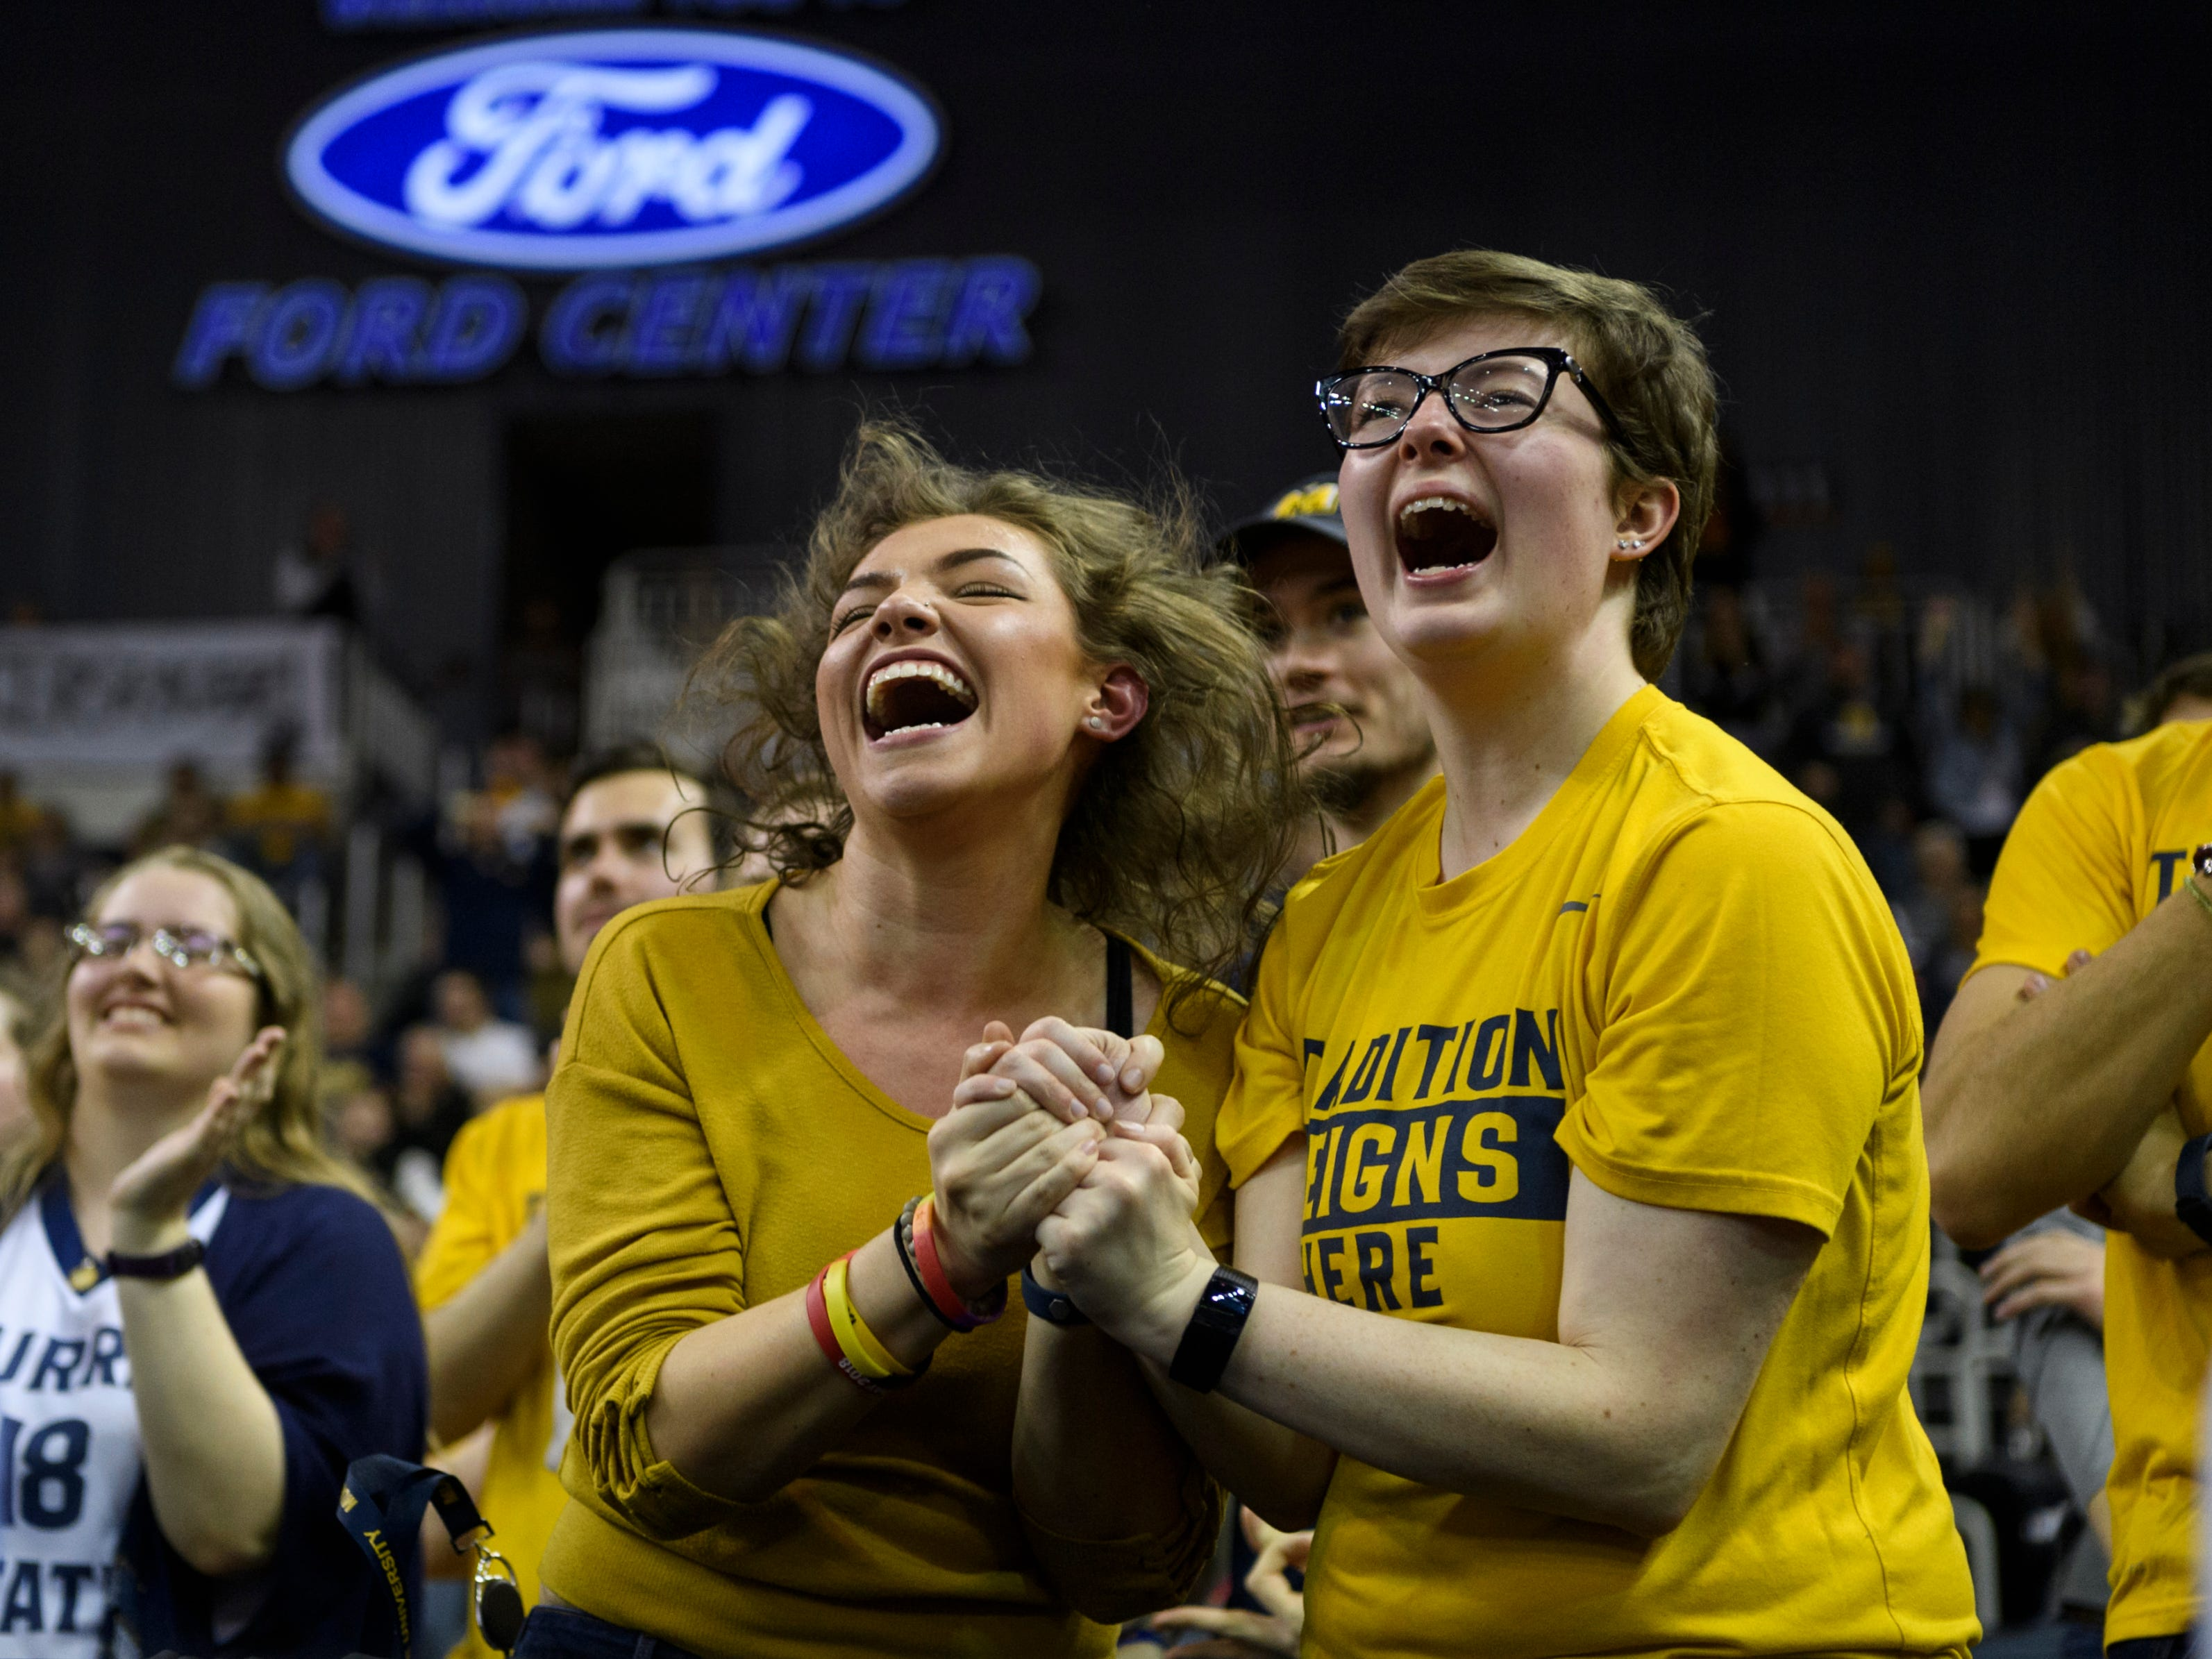 Student fans Kelsay Goldsberry and Amber Miller cheer for the Murray State University Racers during the Ohio Valley Conference tournament semifinal match up against the Jacksonville State University Gamecocks at Ford Center in Evansville, Ind., Friday, March 8, 2019.